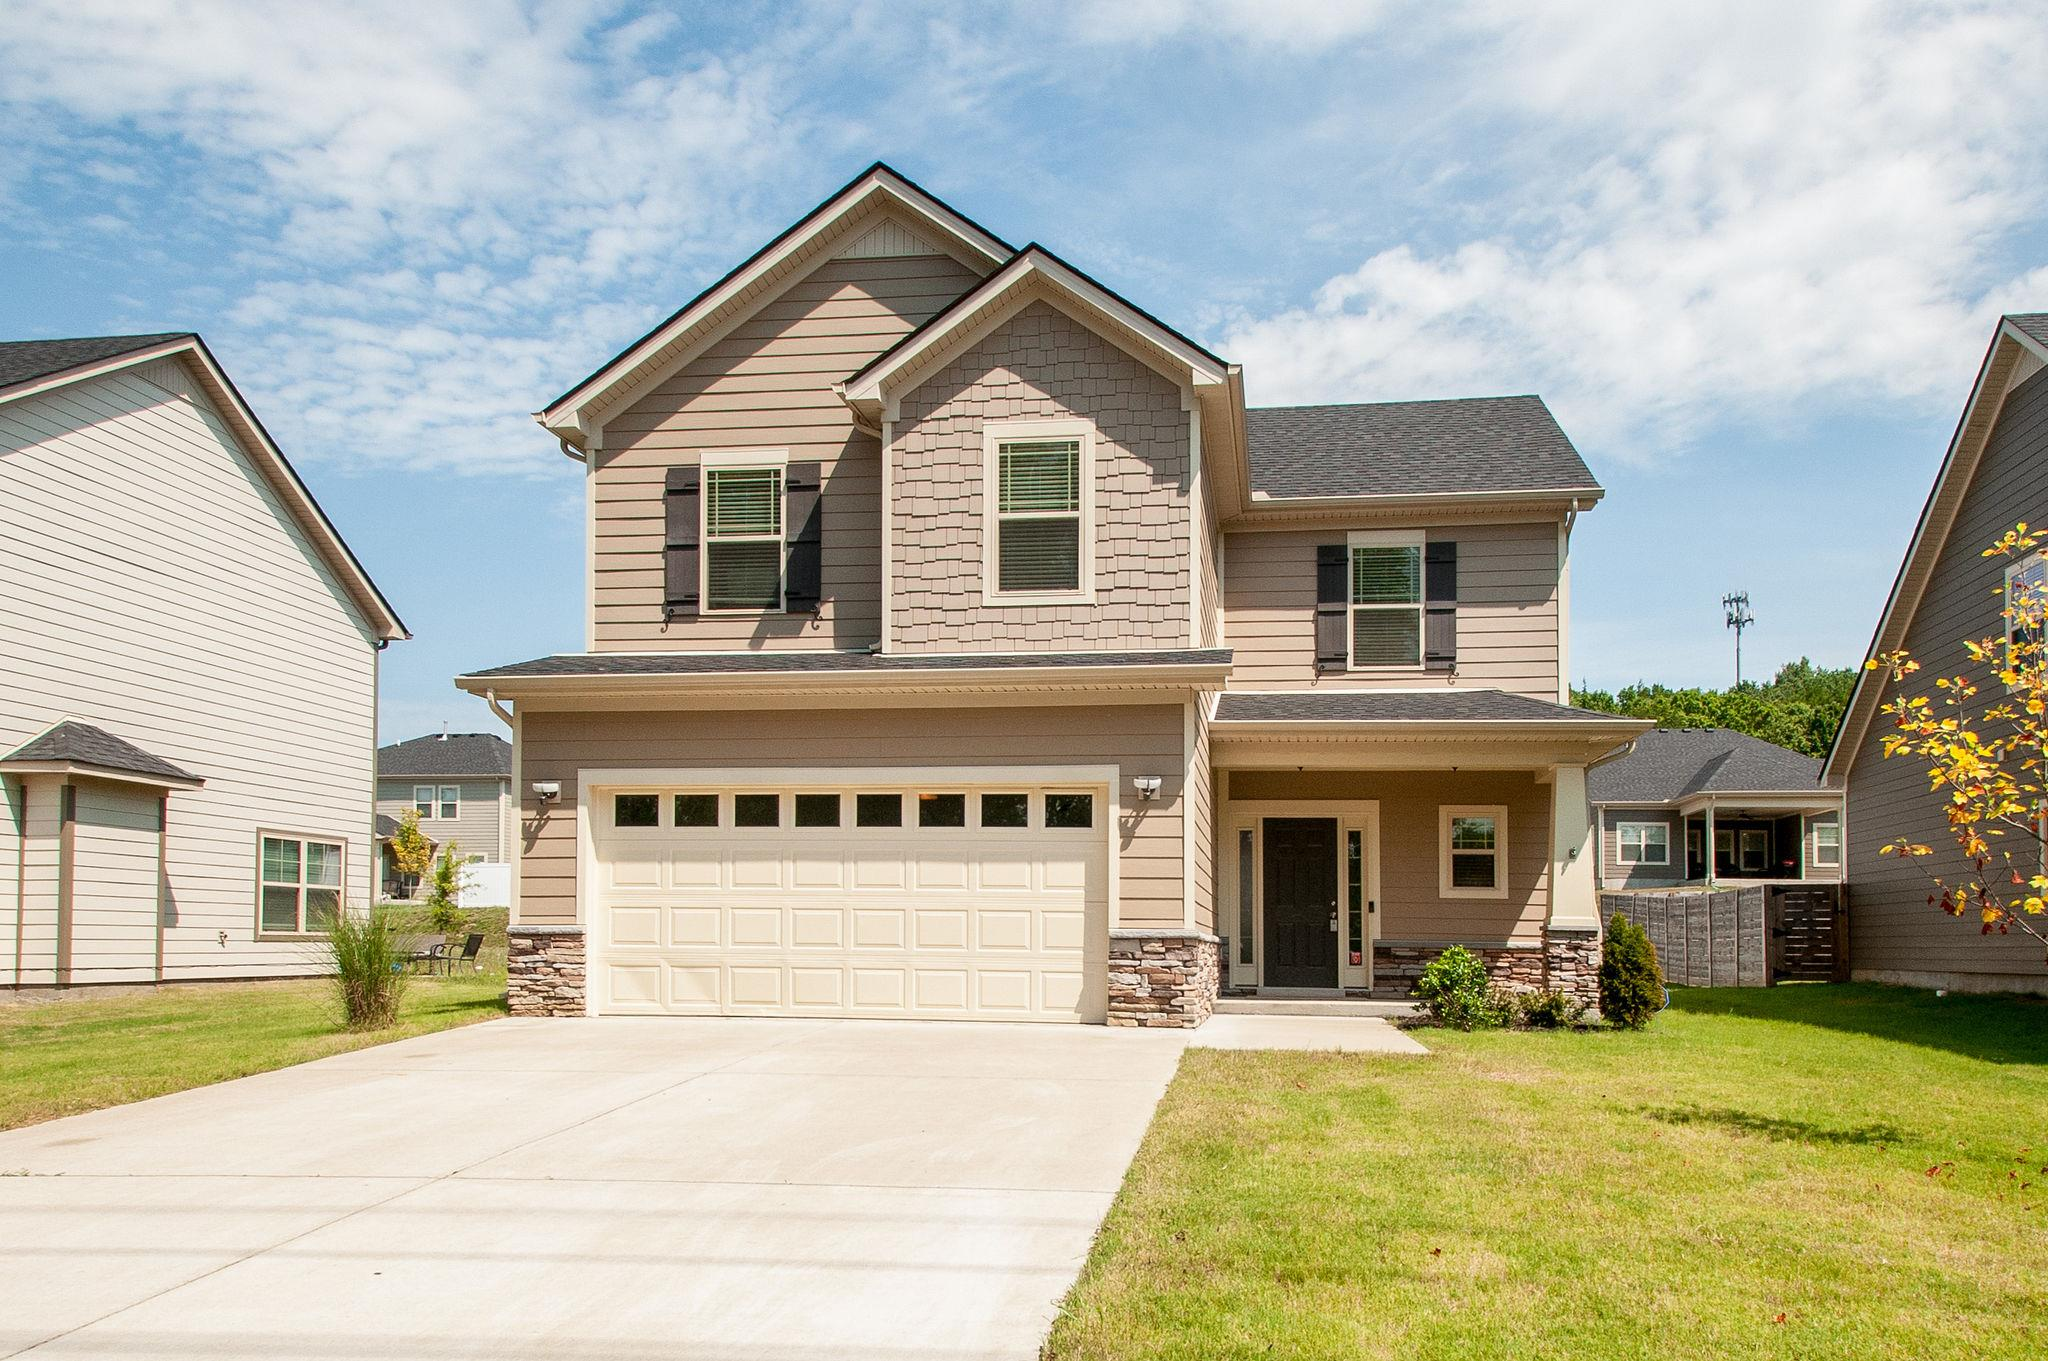 572 Green Ln, Whites Creek, TN 37189 - Whites Creek, TN real estate listing